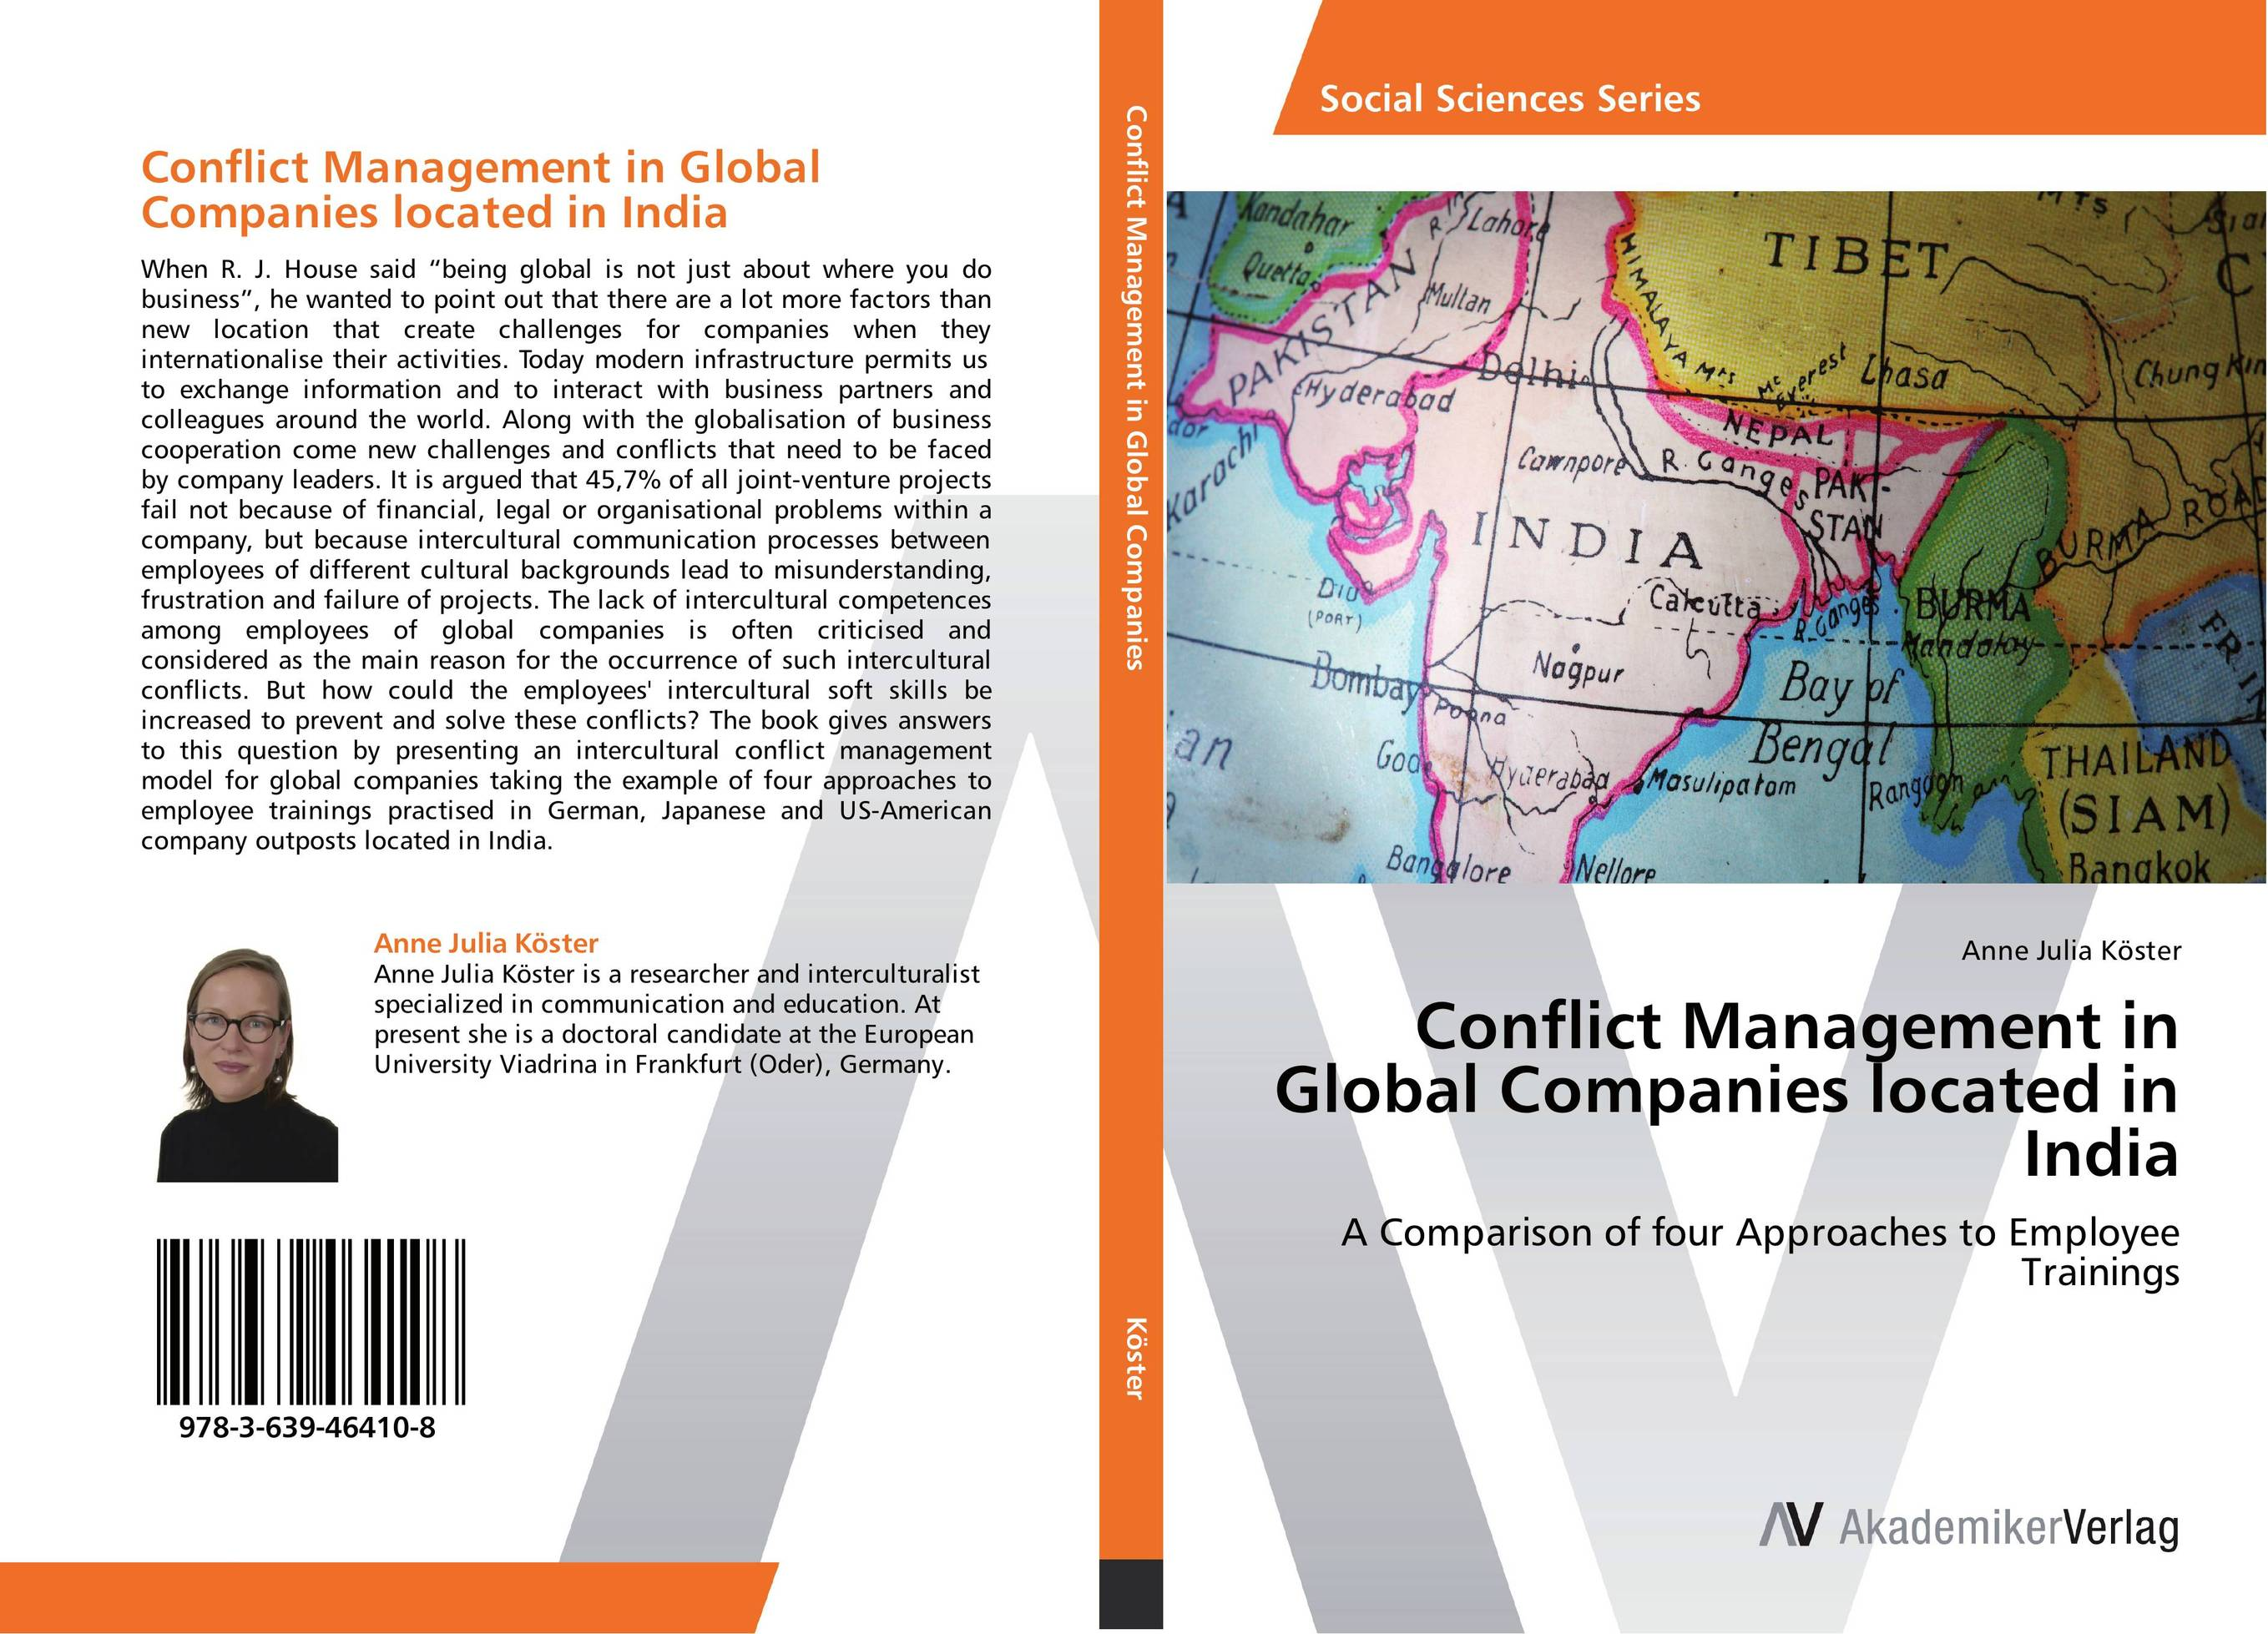 Conflict Management in Global Companies located in India